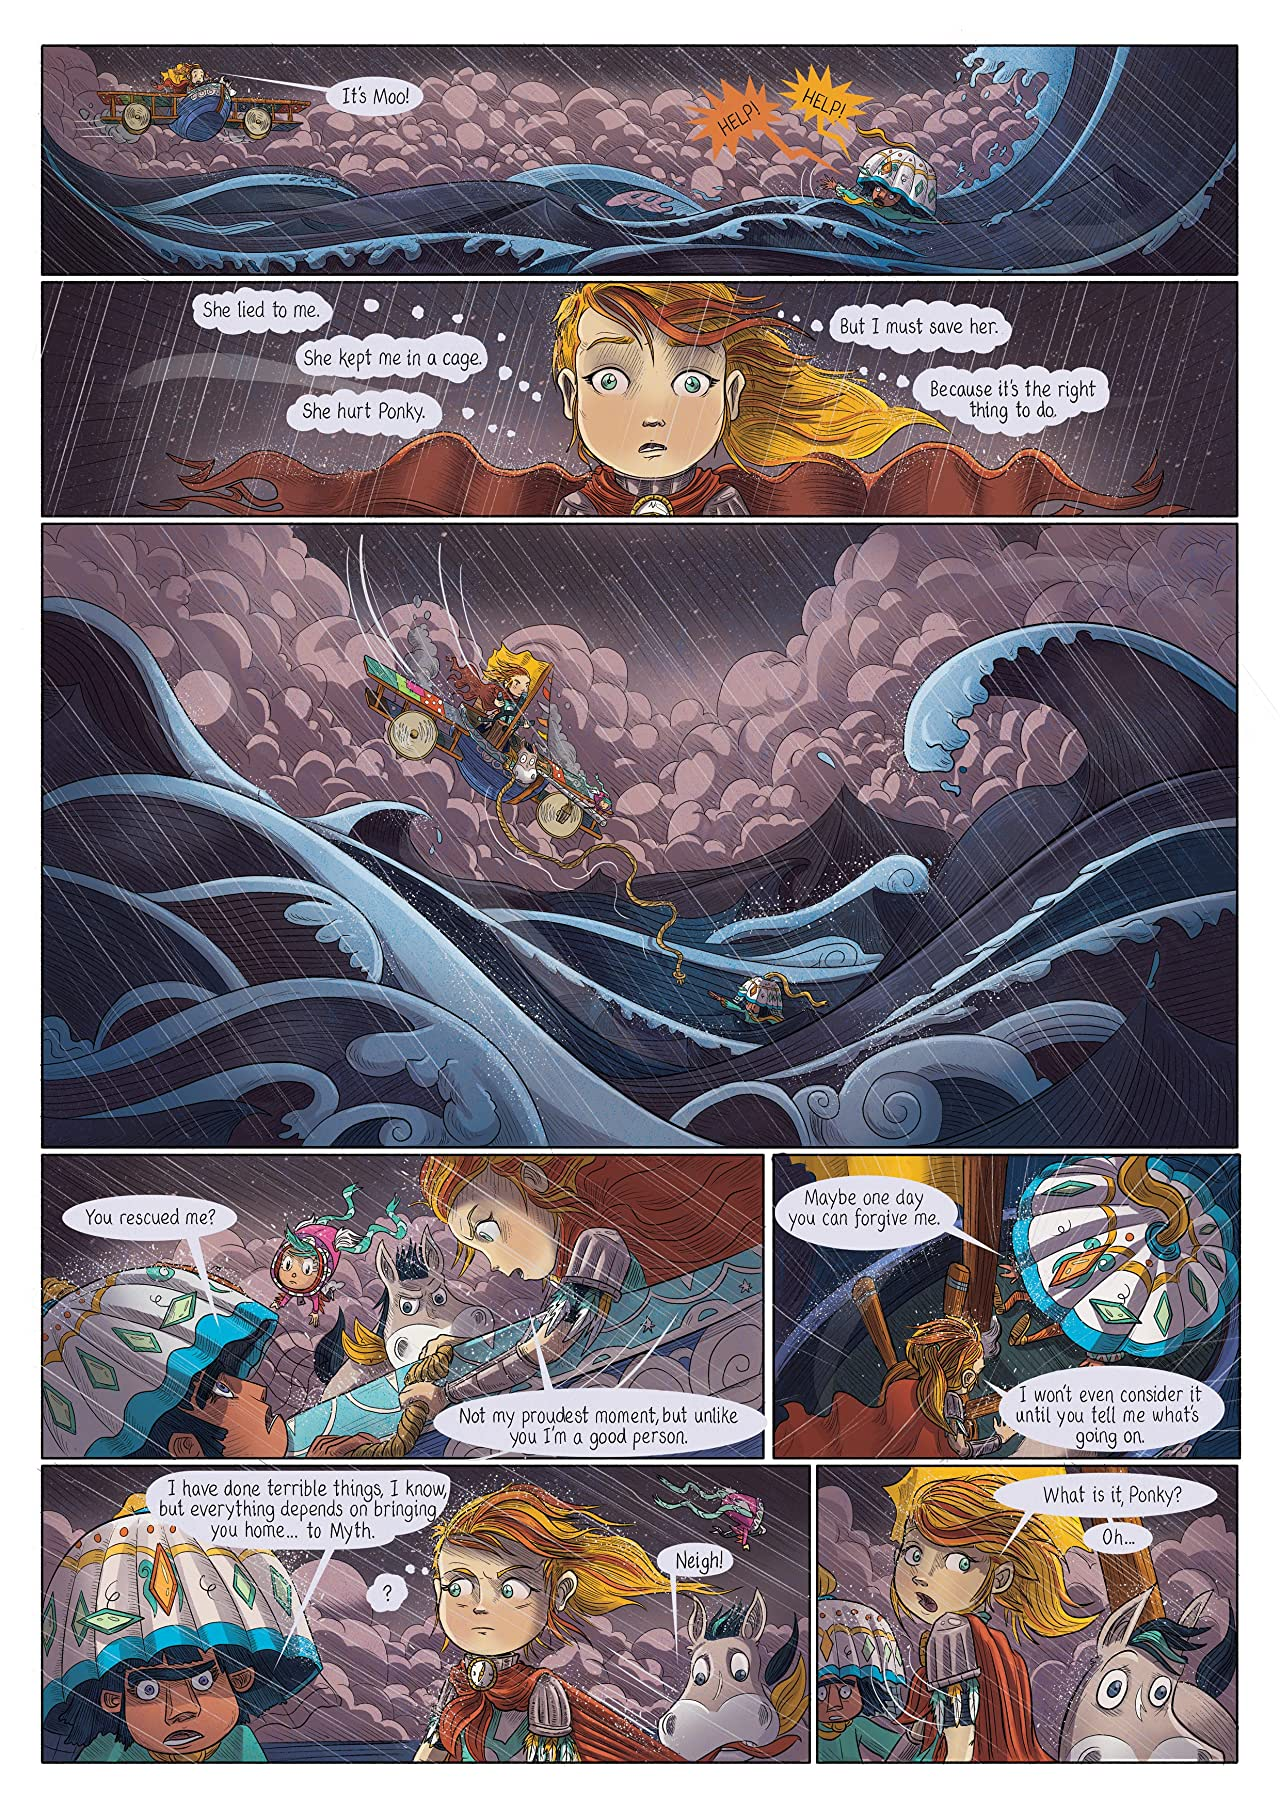 The Phoenix #222: The Weekly Story Comic